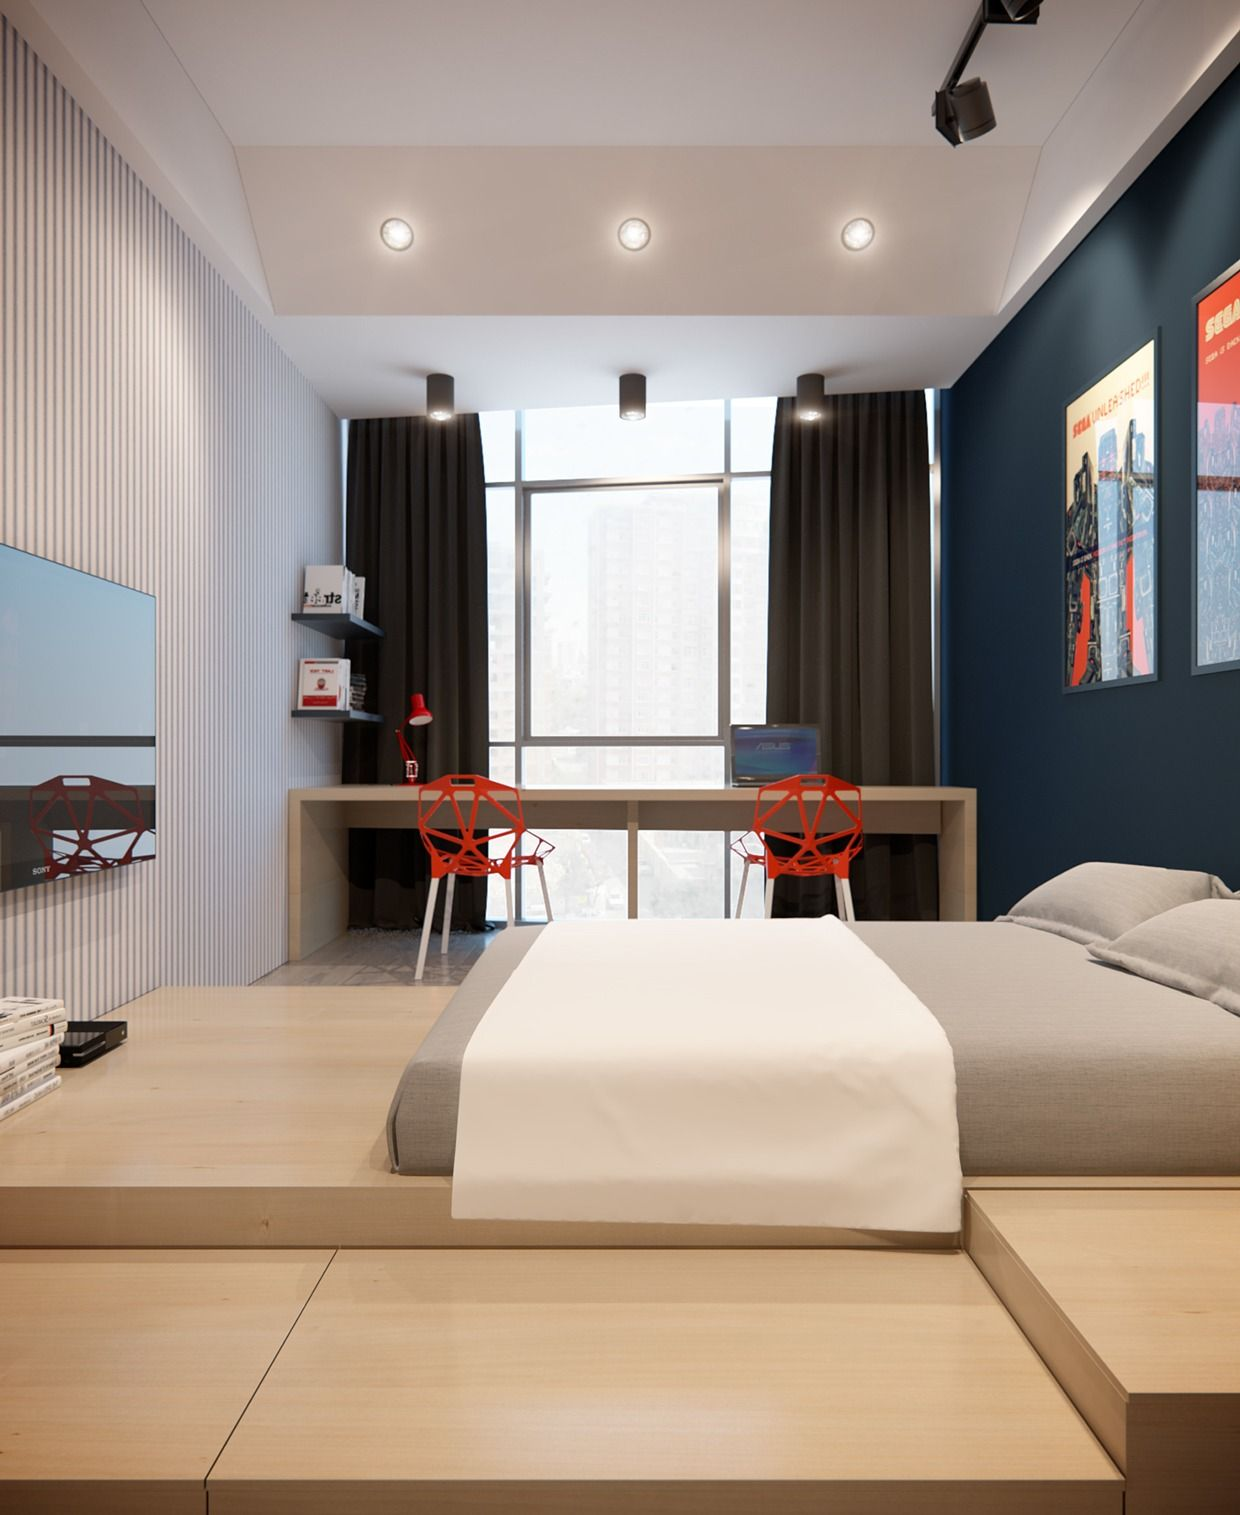 Design Your Own Bedroom App Endearing Apartmentsdelightful Apartment Bedroom Design Ideas With Single Inspiration Design